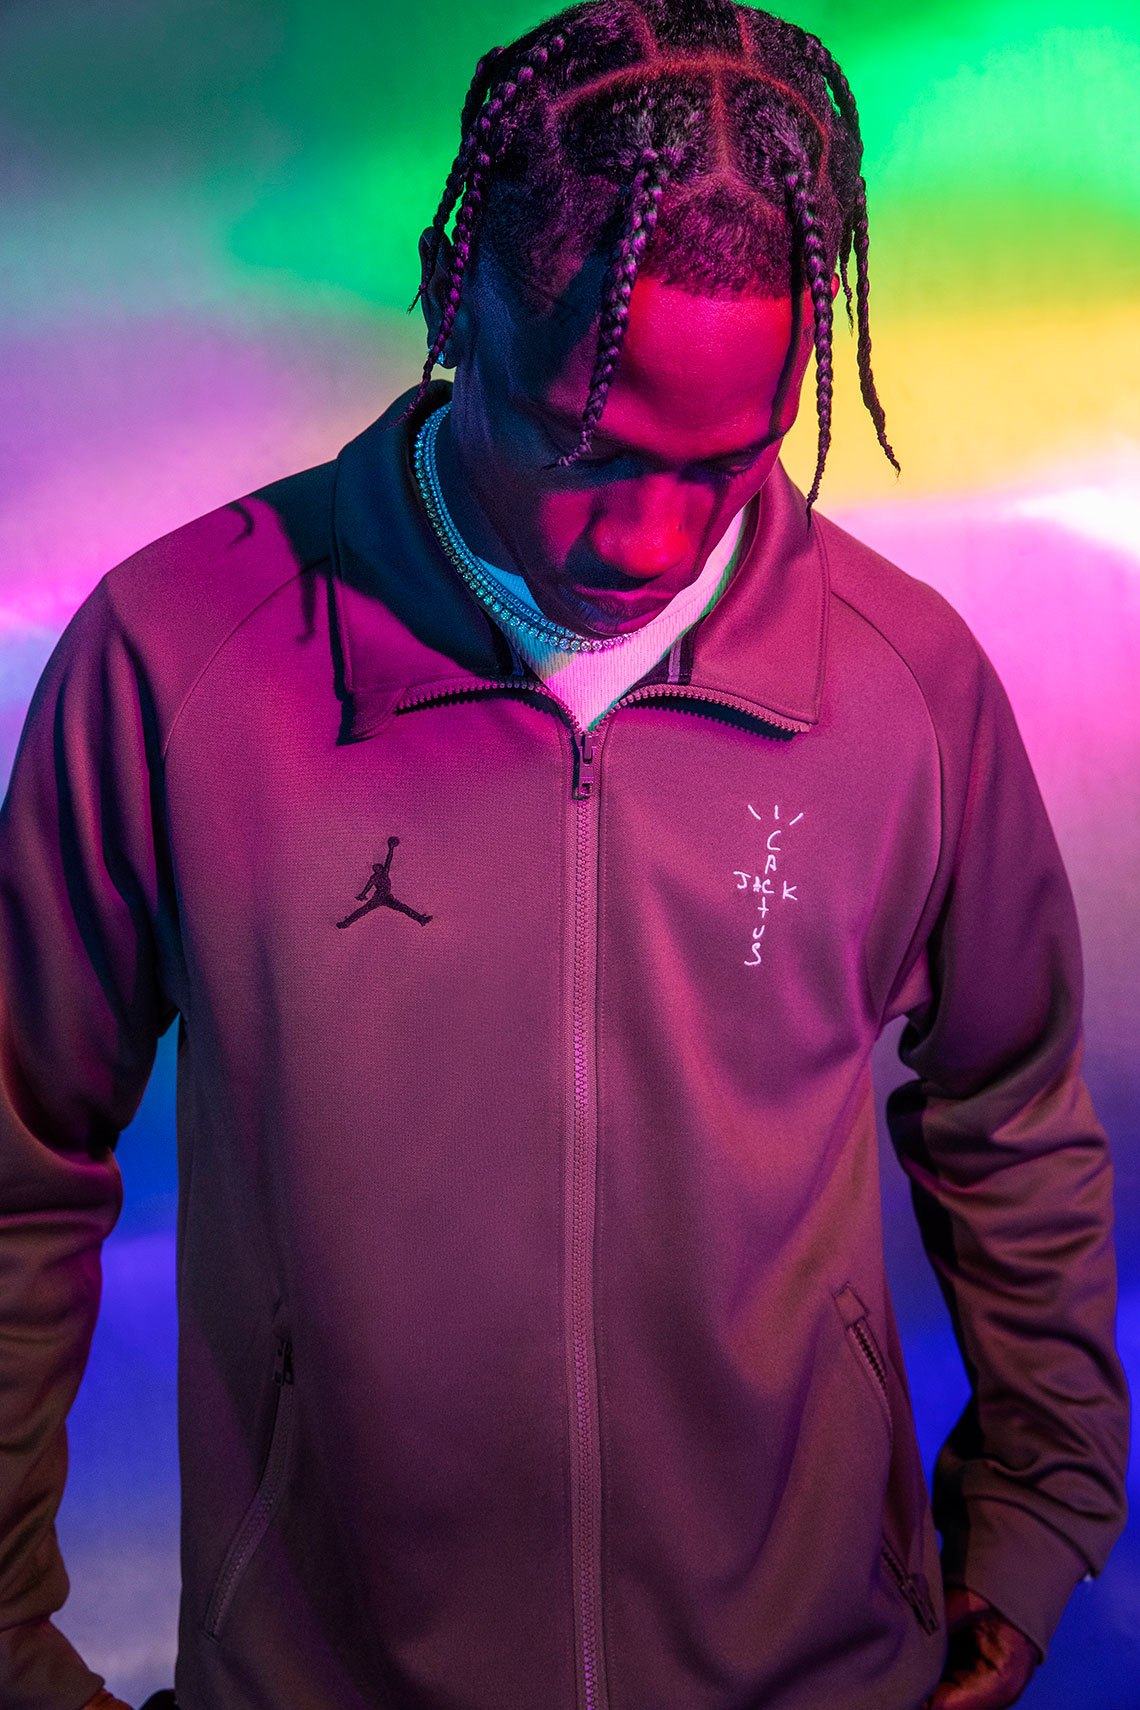 7b0a3d66f3d The full Travis Scott x Air Jordan 1 collection drops on Saturday (May 11),  with the sneakers retailing for $175 USD on Nike SNKRS and through raffles  at ...